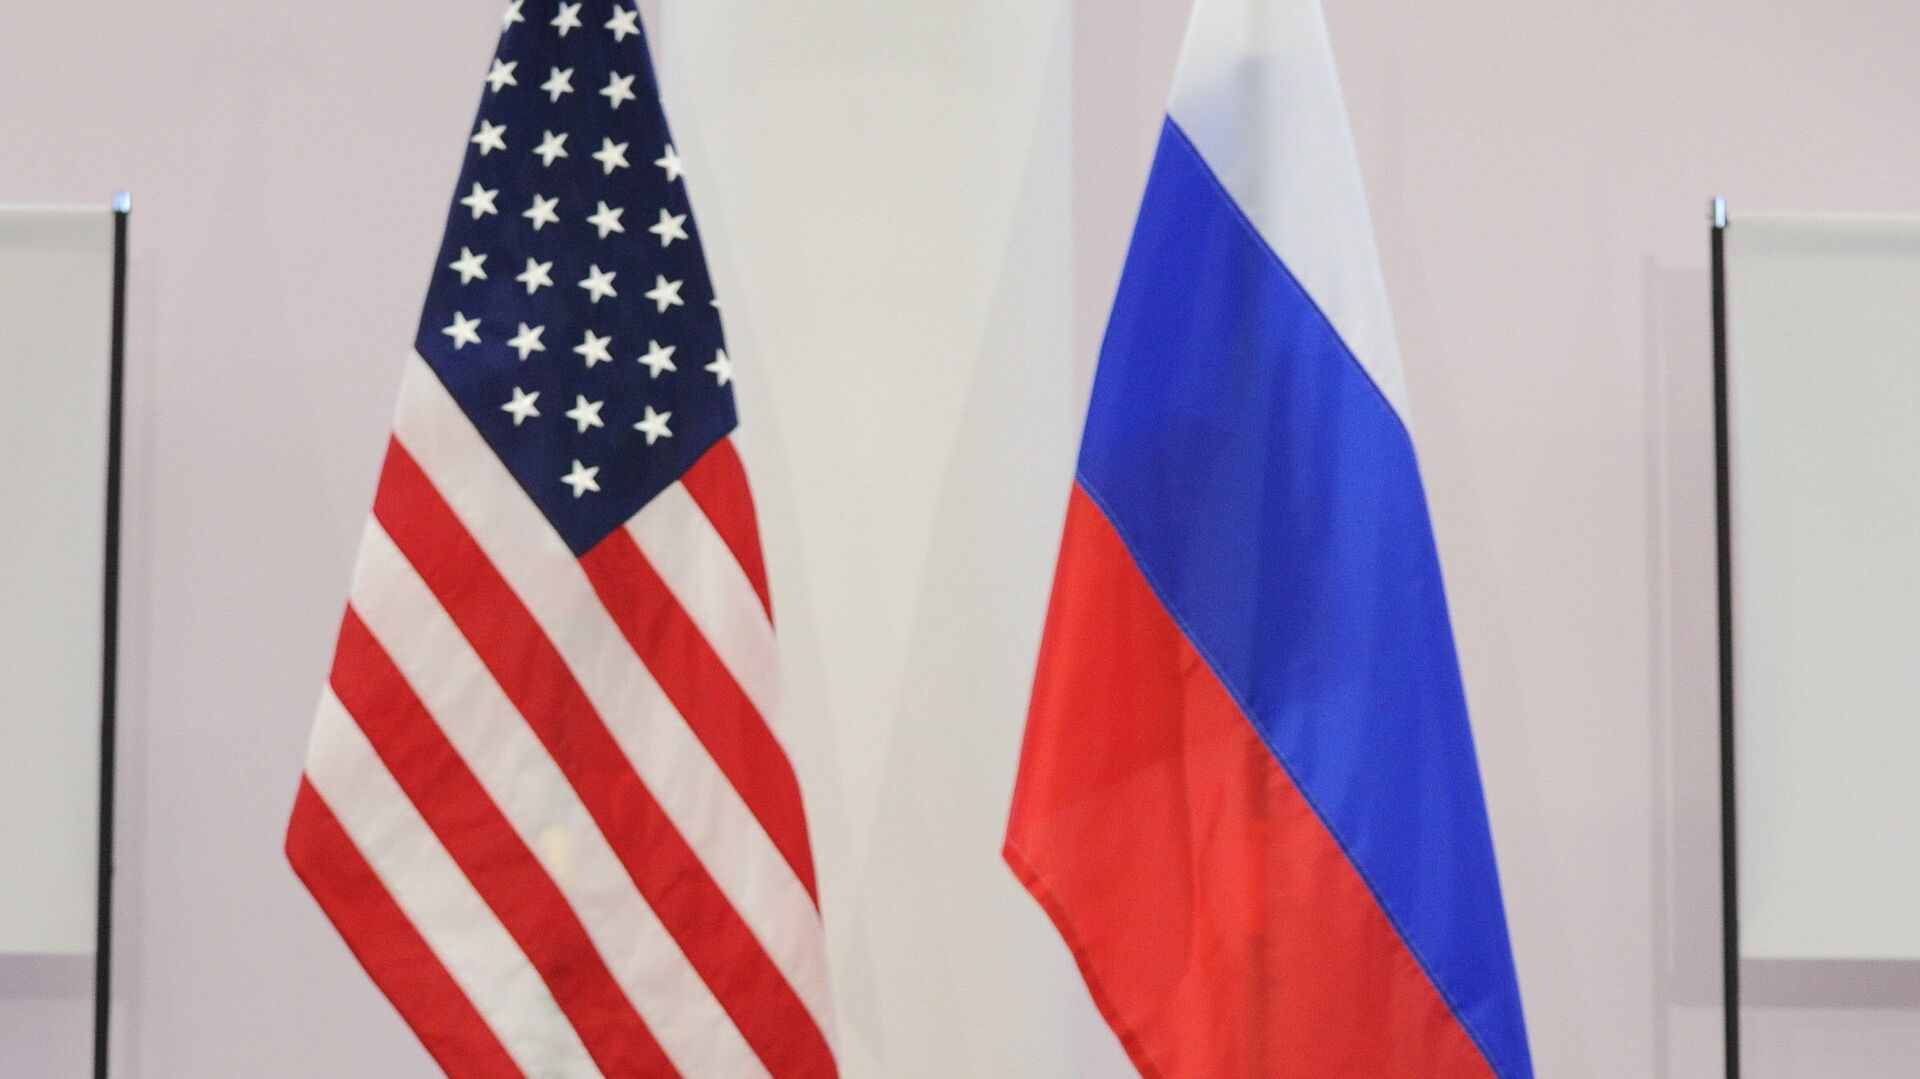 US and Russian flags - Sputnik Mundo, 1920, 15.04.2021